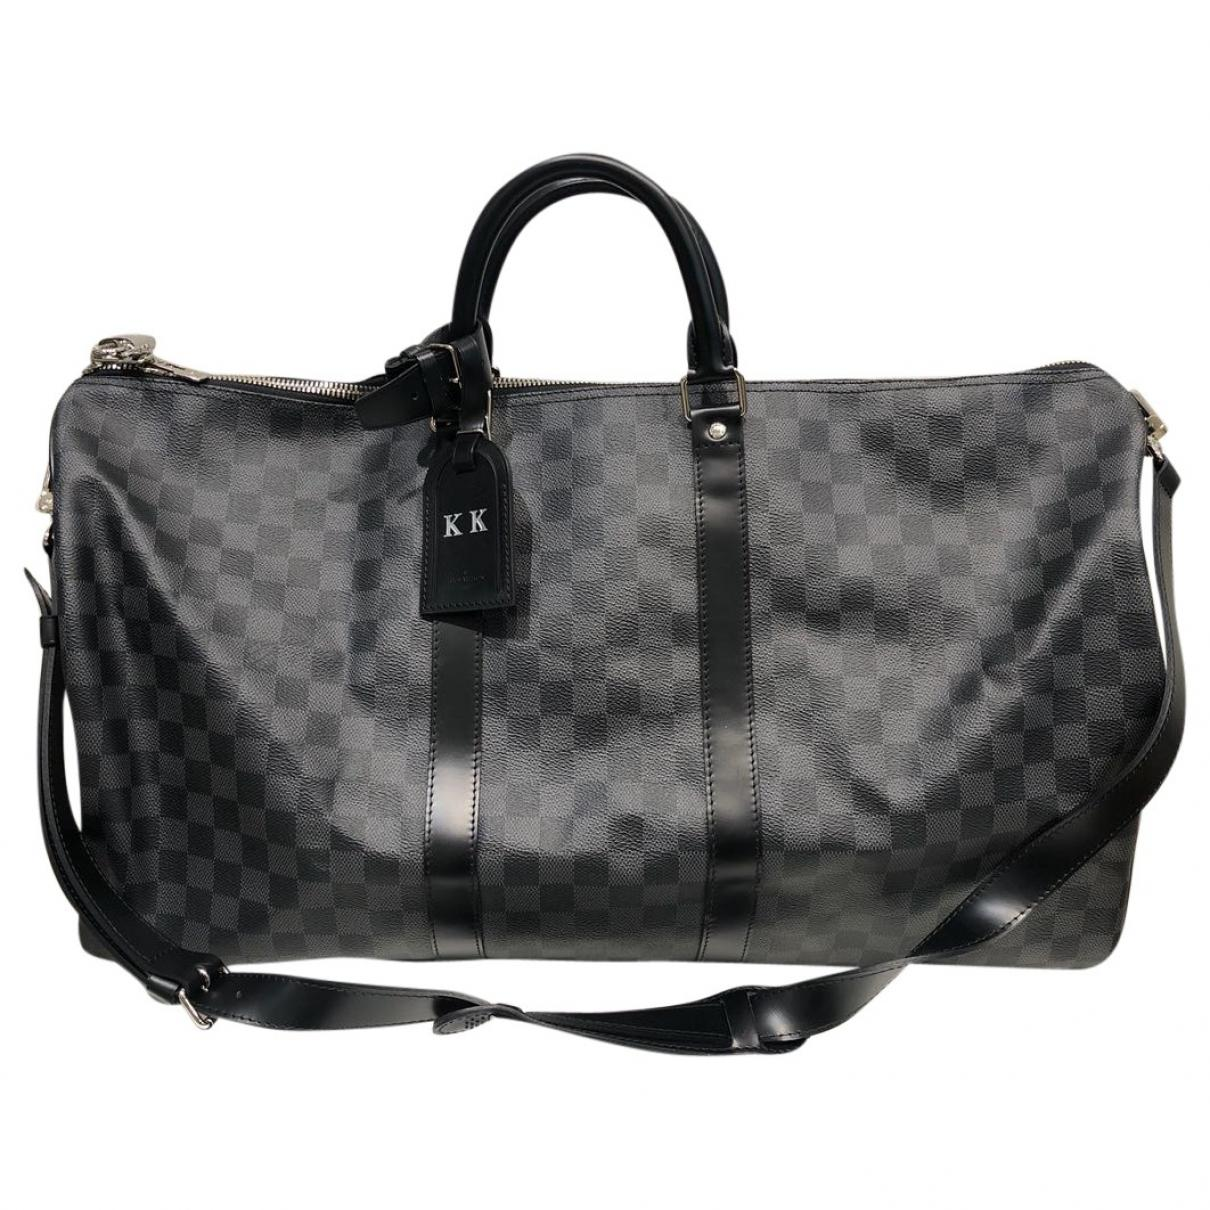 Lyst - Louis Vuitton Keepall Cloth Weekend Bag in Gray for Men 421fff9323fbe